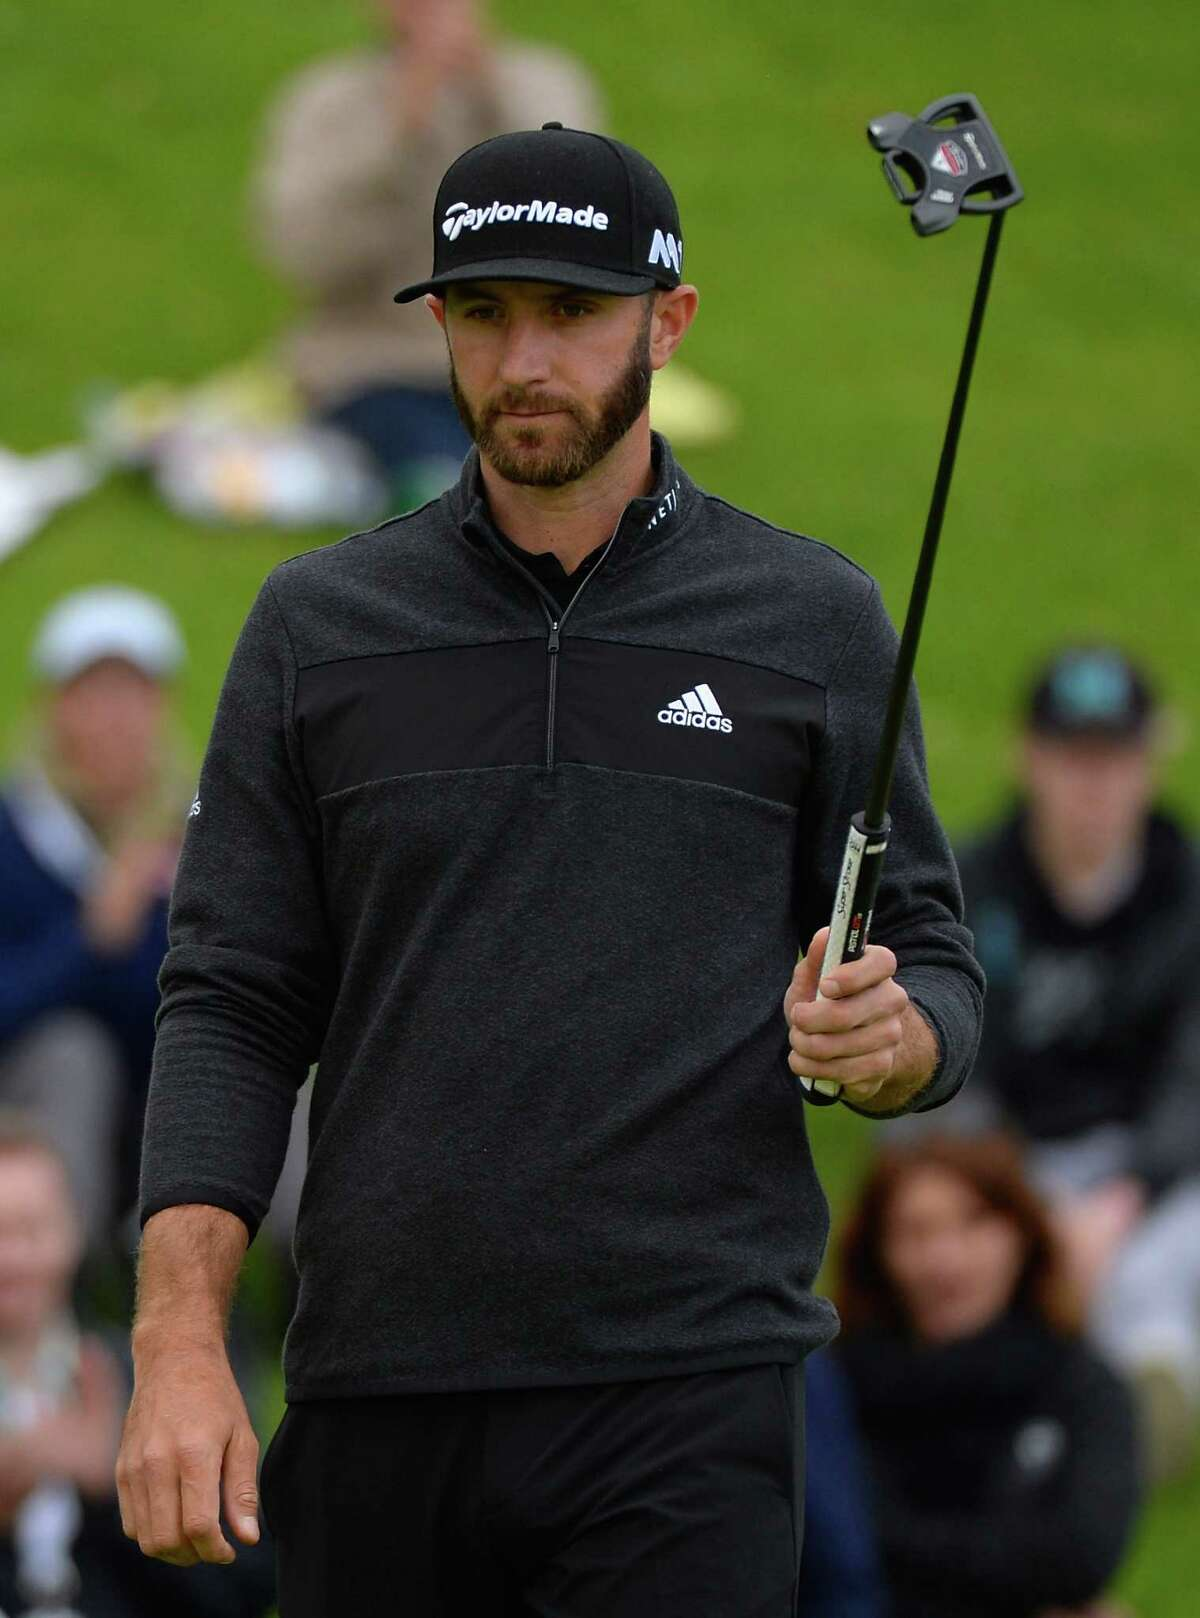 PACIFIC PALISADES, CA - FEBRUARY 18: Dustin Johnson reacts to his birdie on the 18th hole during a continuation of the second round at the Genesis Open at Riviera Country Club on February 18, 2017 in Pacific Palisades, California. (Photo by Robert Laberge/Getty Images) ORG XMIT: 686968397